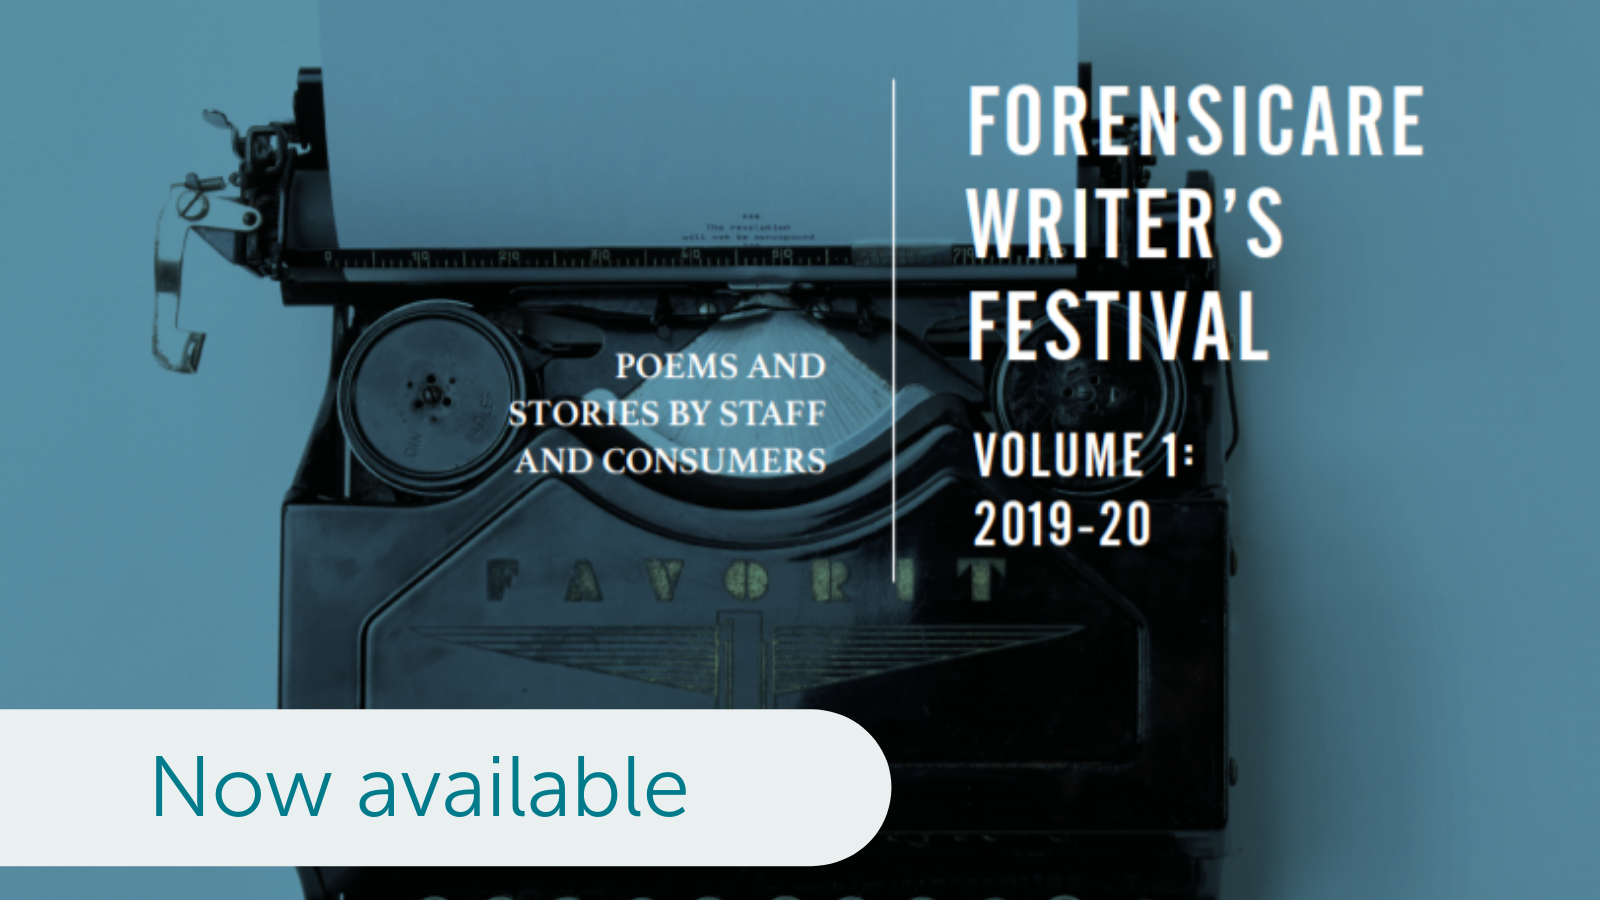 Forensicare Writer's Festival volume 1 2019-2020 now available